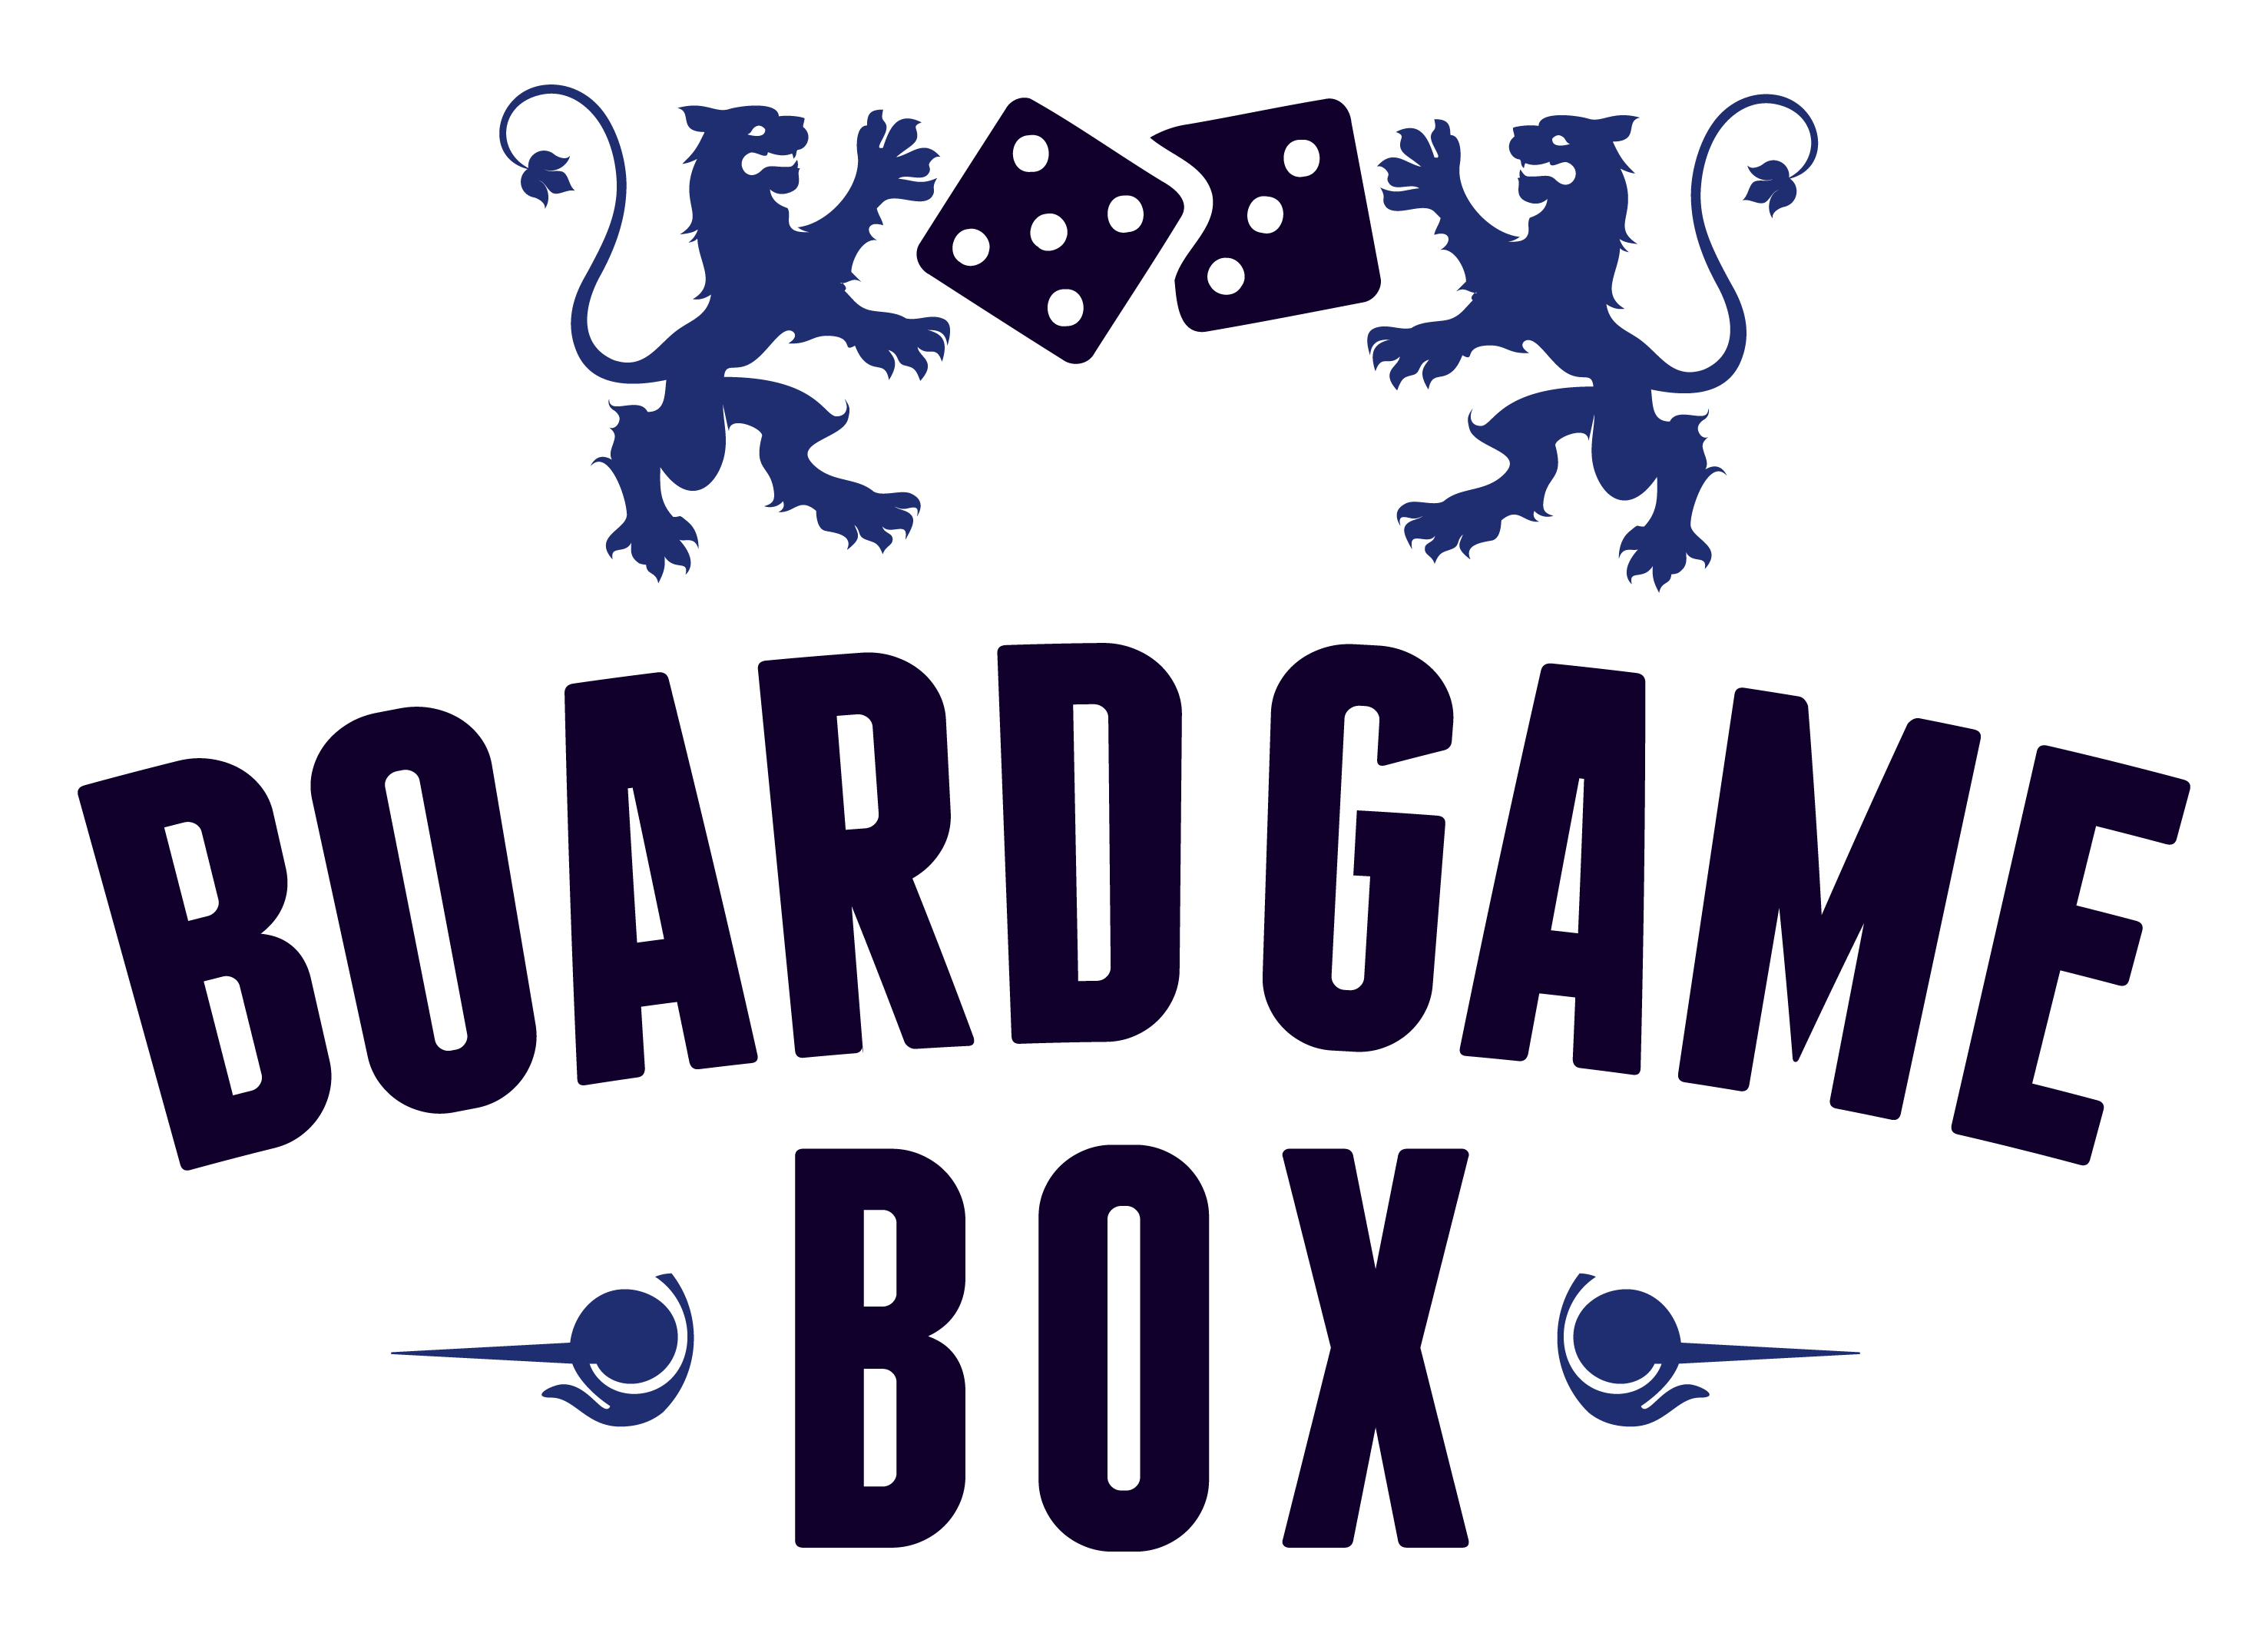 Board Game Box